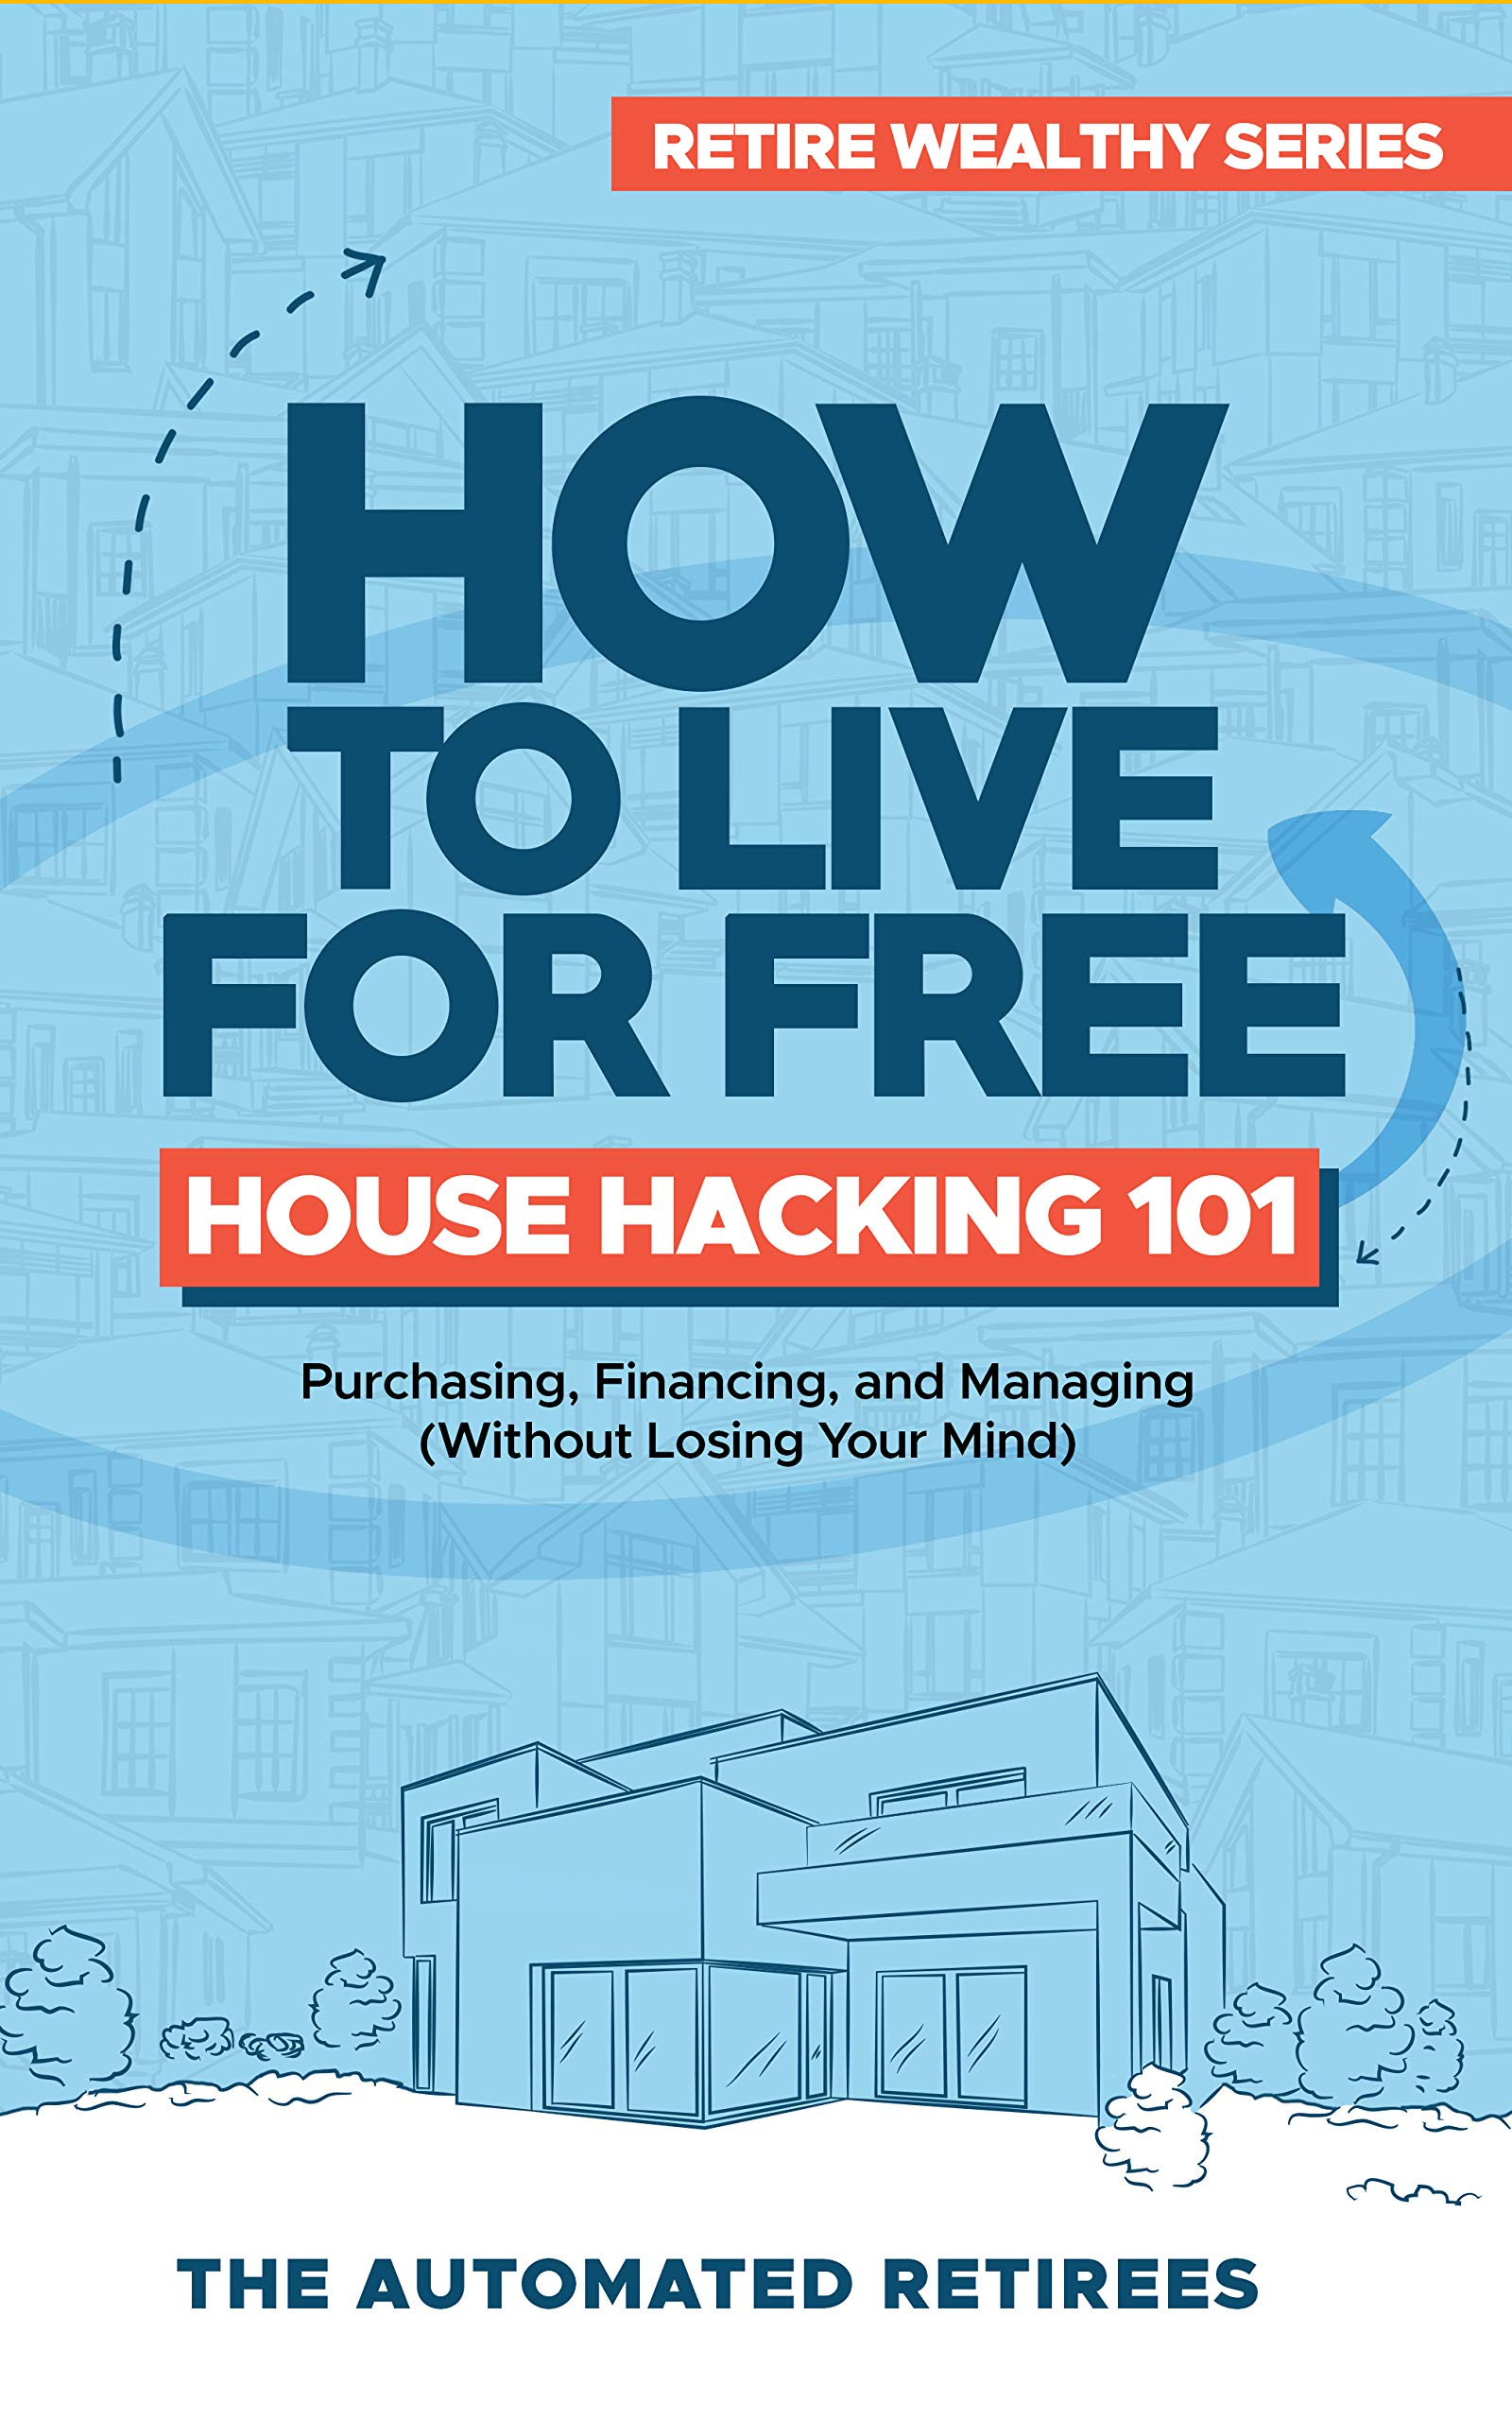 How to Live for Free - House Hacking 101: Purchasing, Financing, and Managing (Without Losing Your Mind)